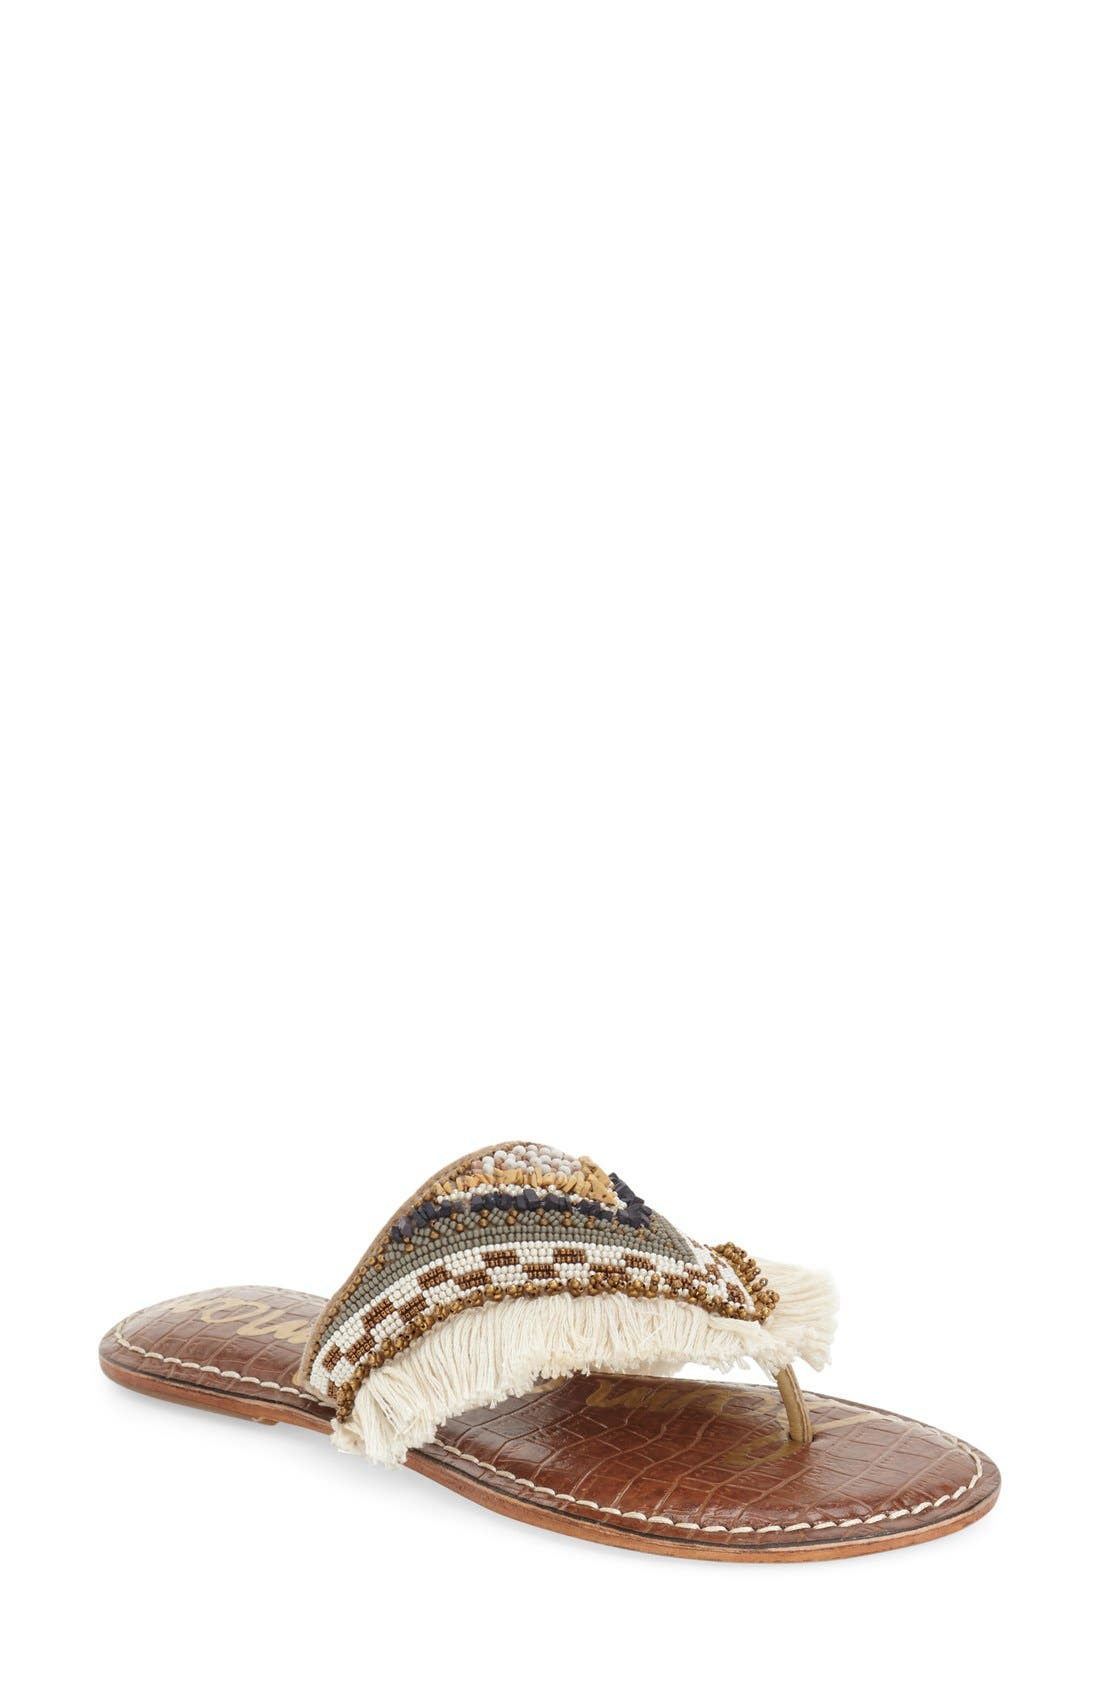 Main Image - Sam Edelman 'Kennedy' Beaded Sandal (Women)